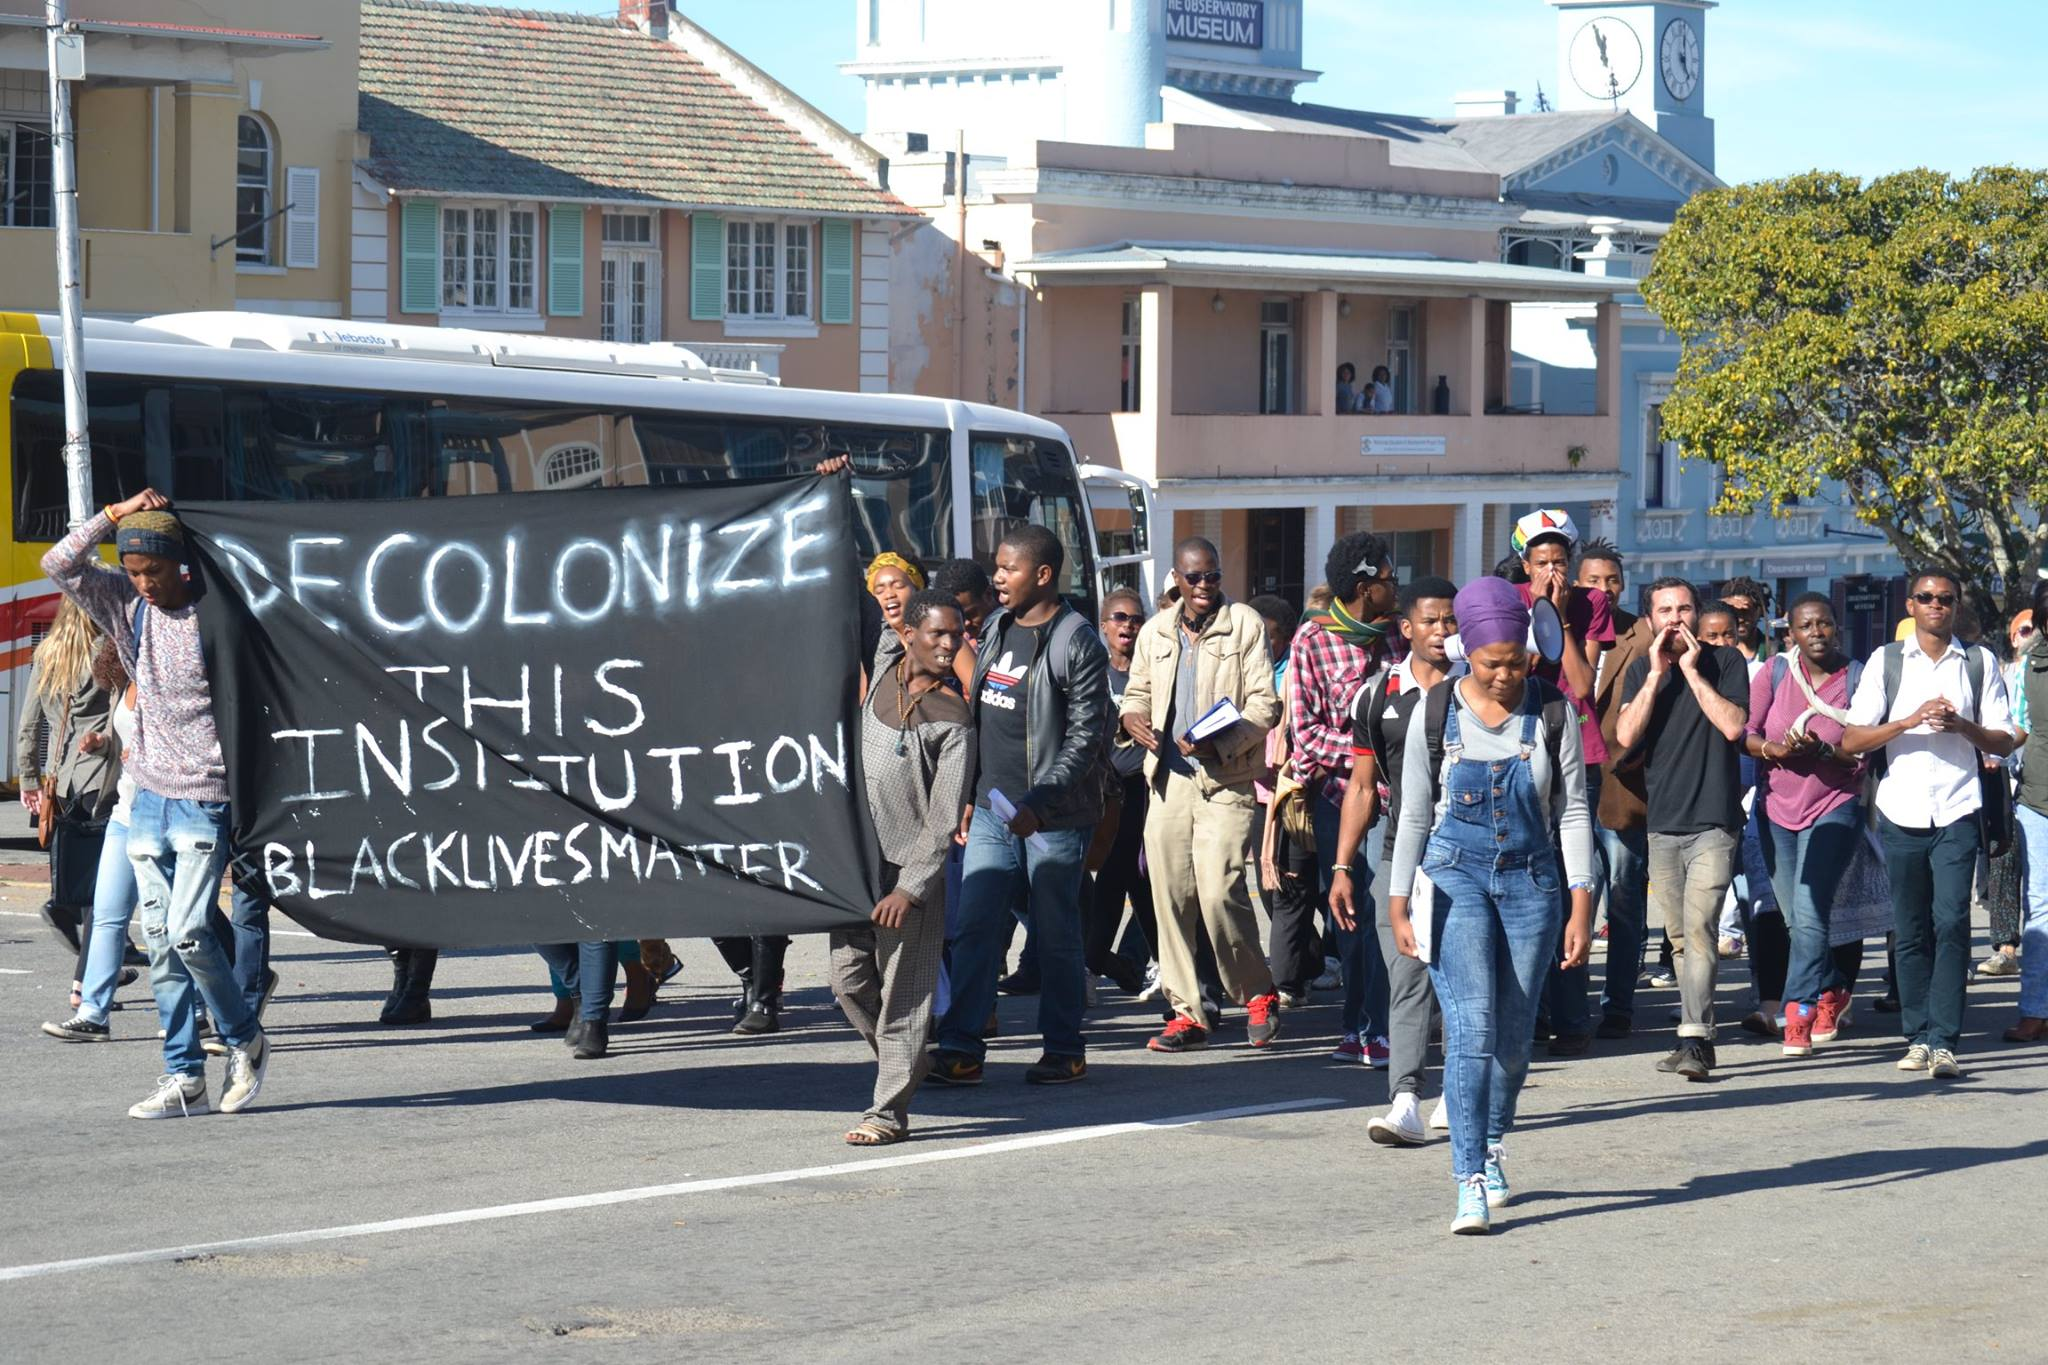 BSM protests in Grahamstown image by Xolile Madinda